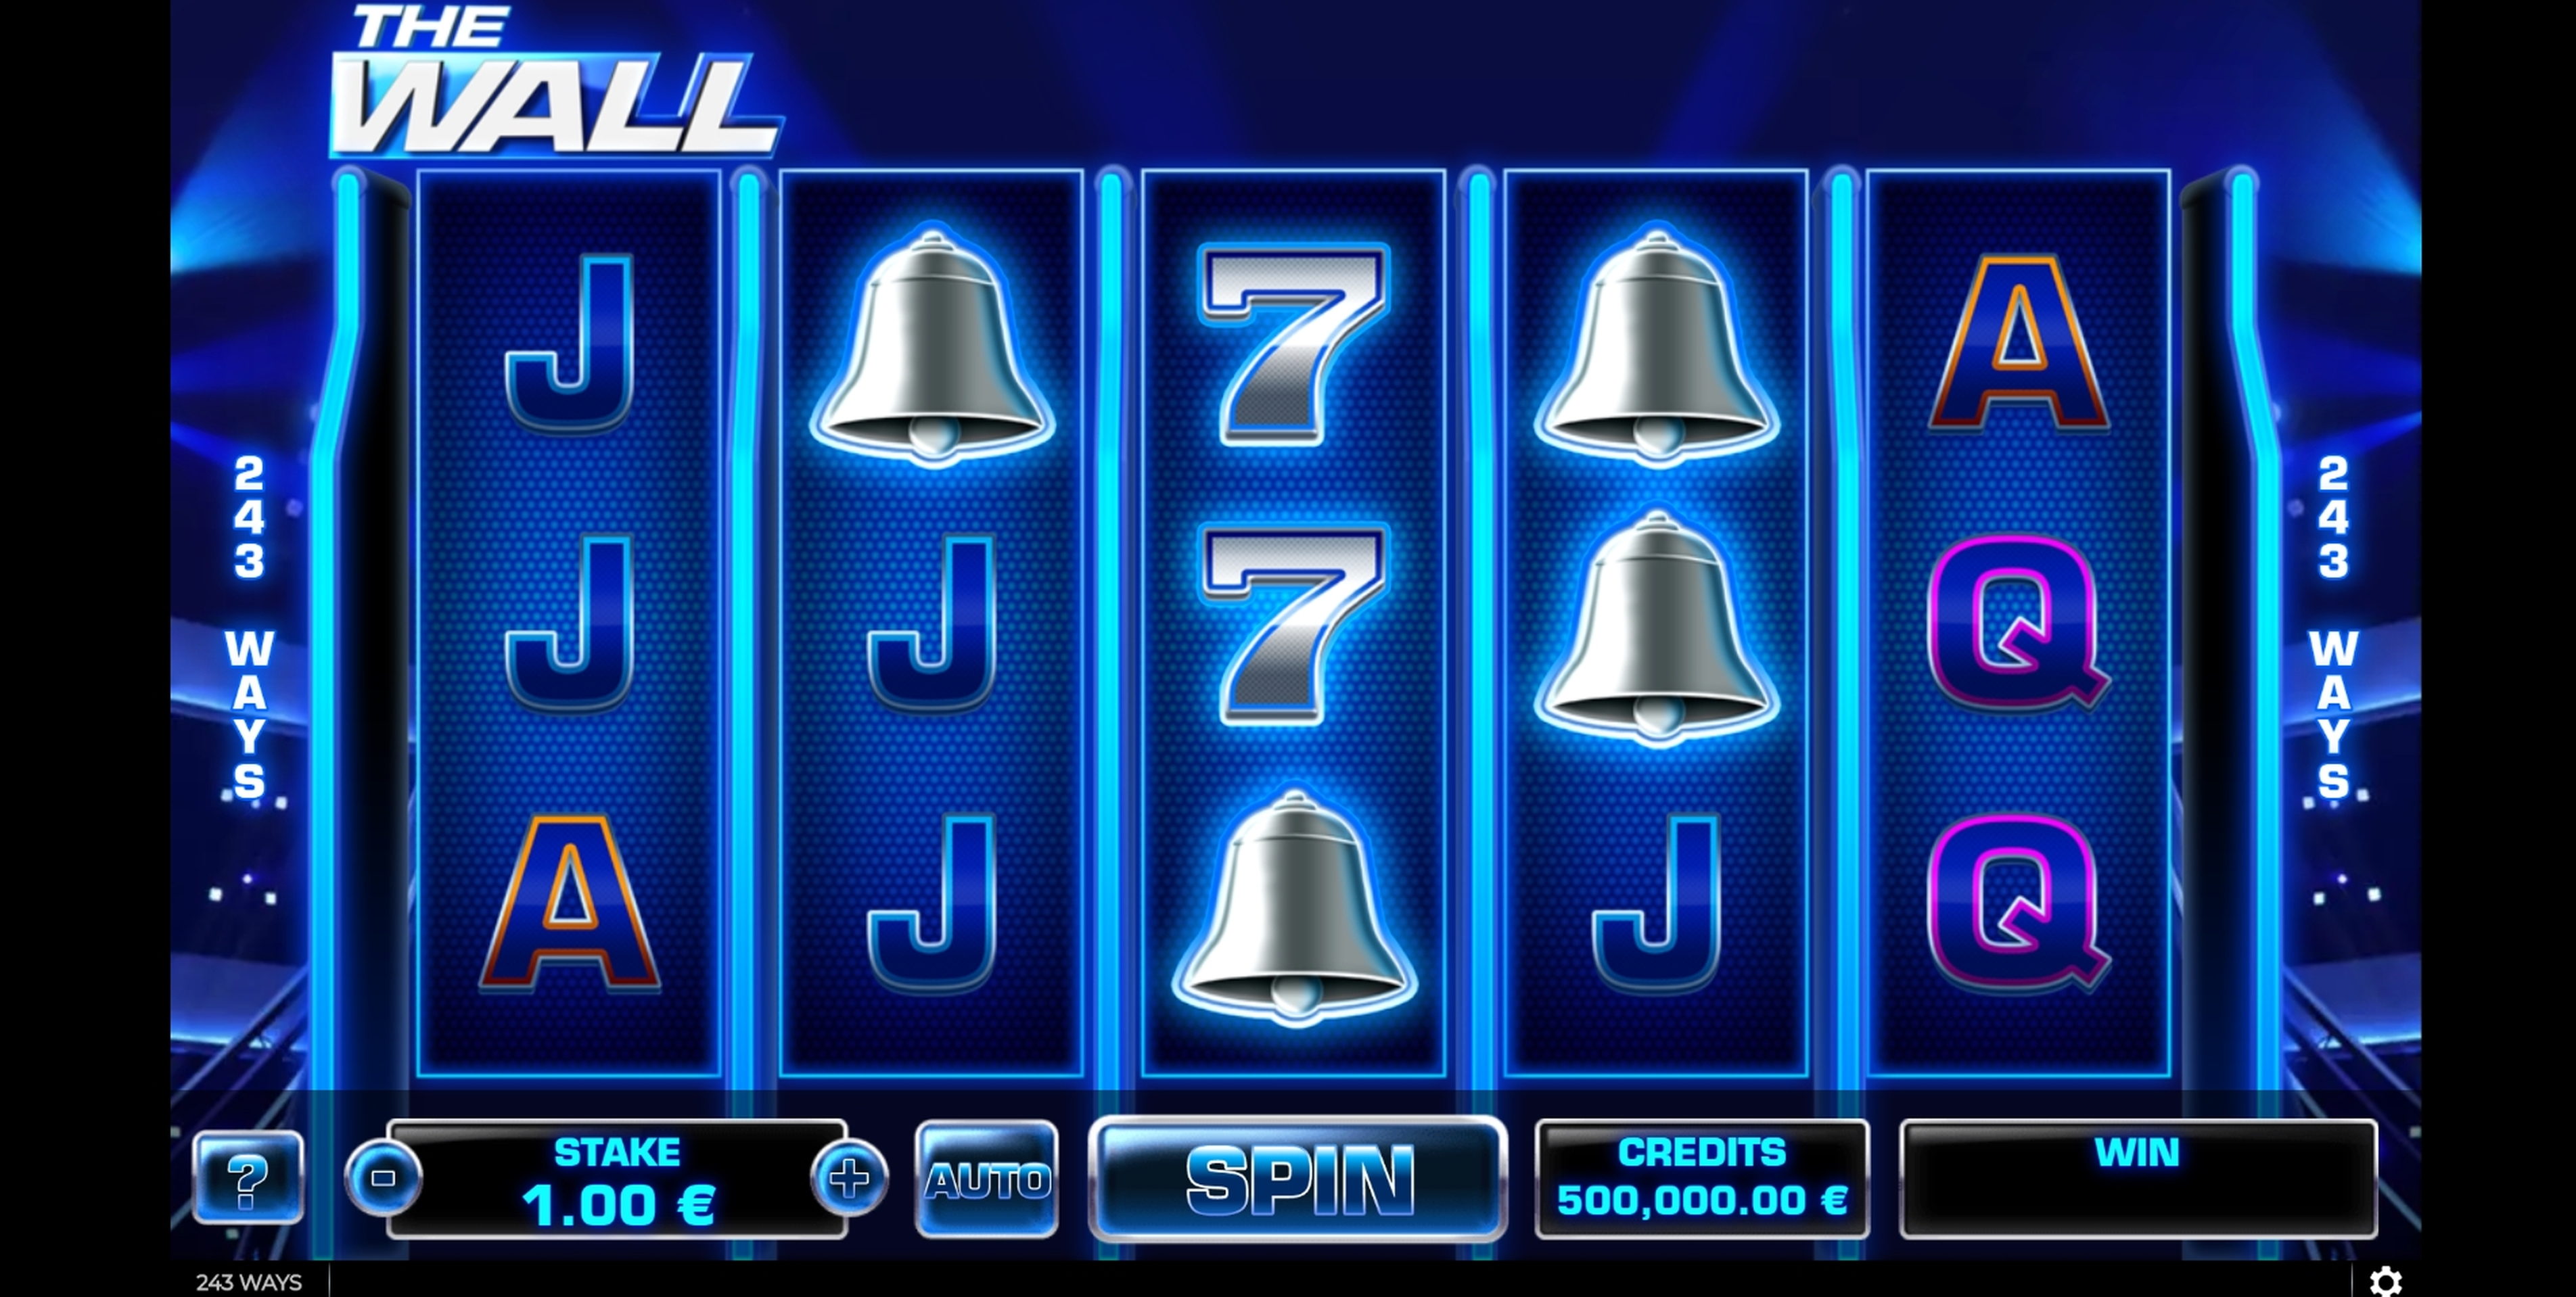 Reels in The Wall Slot Game by GAMING1